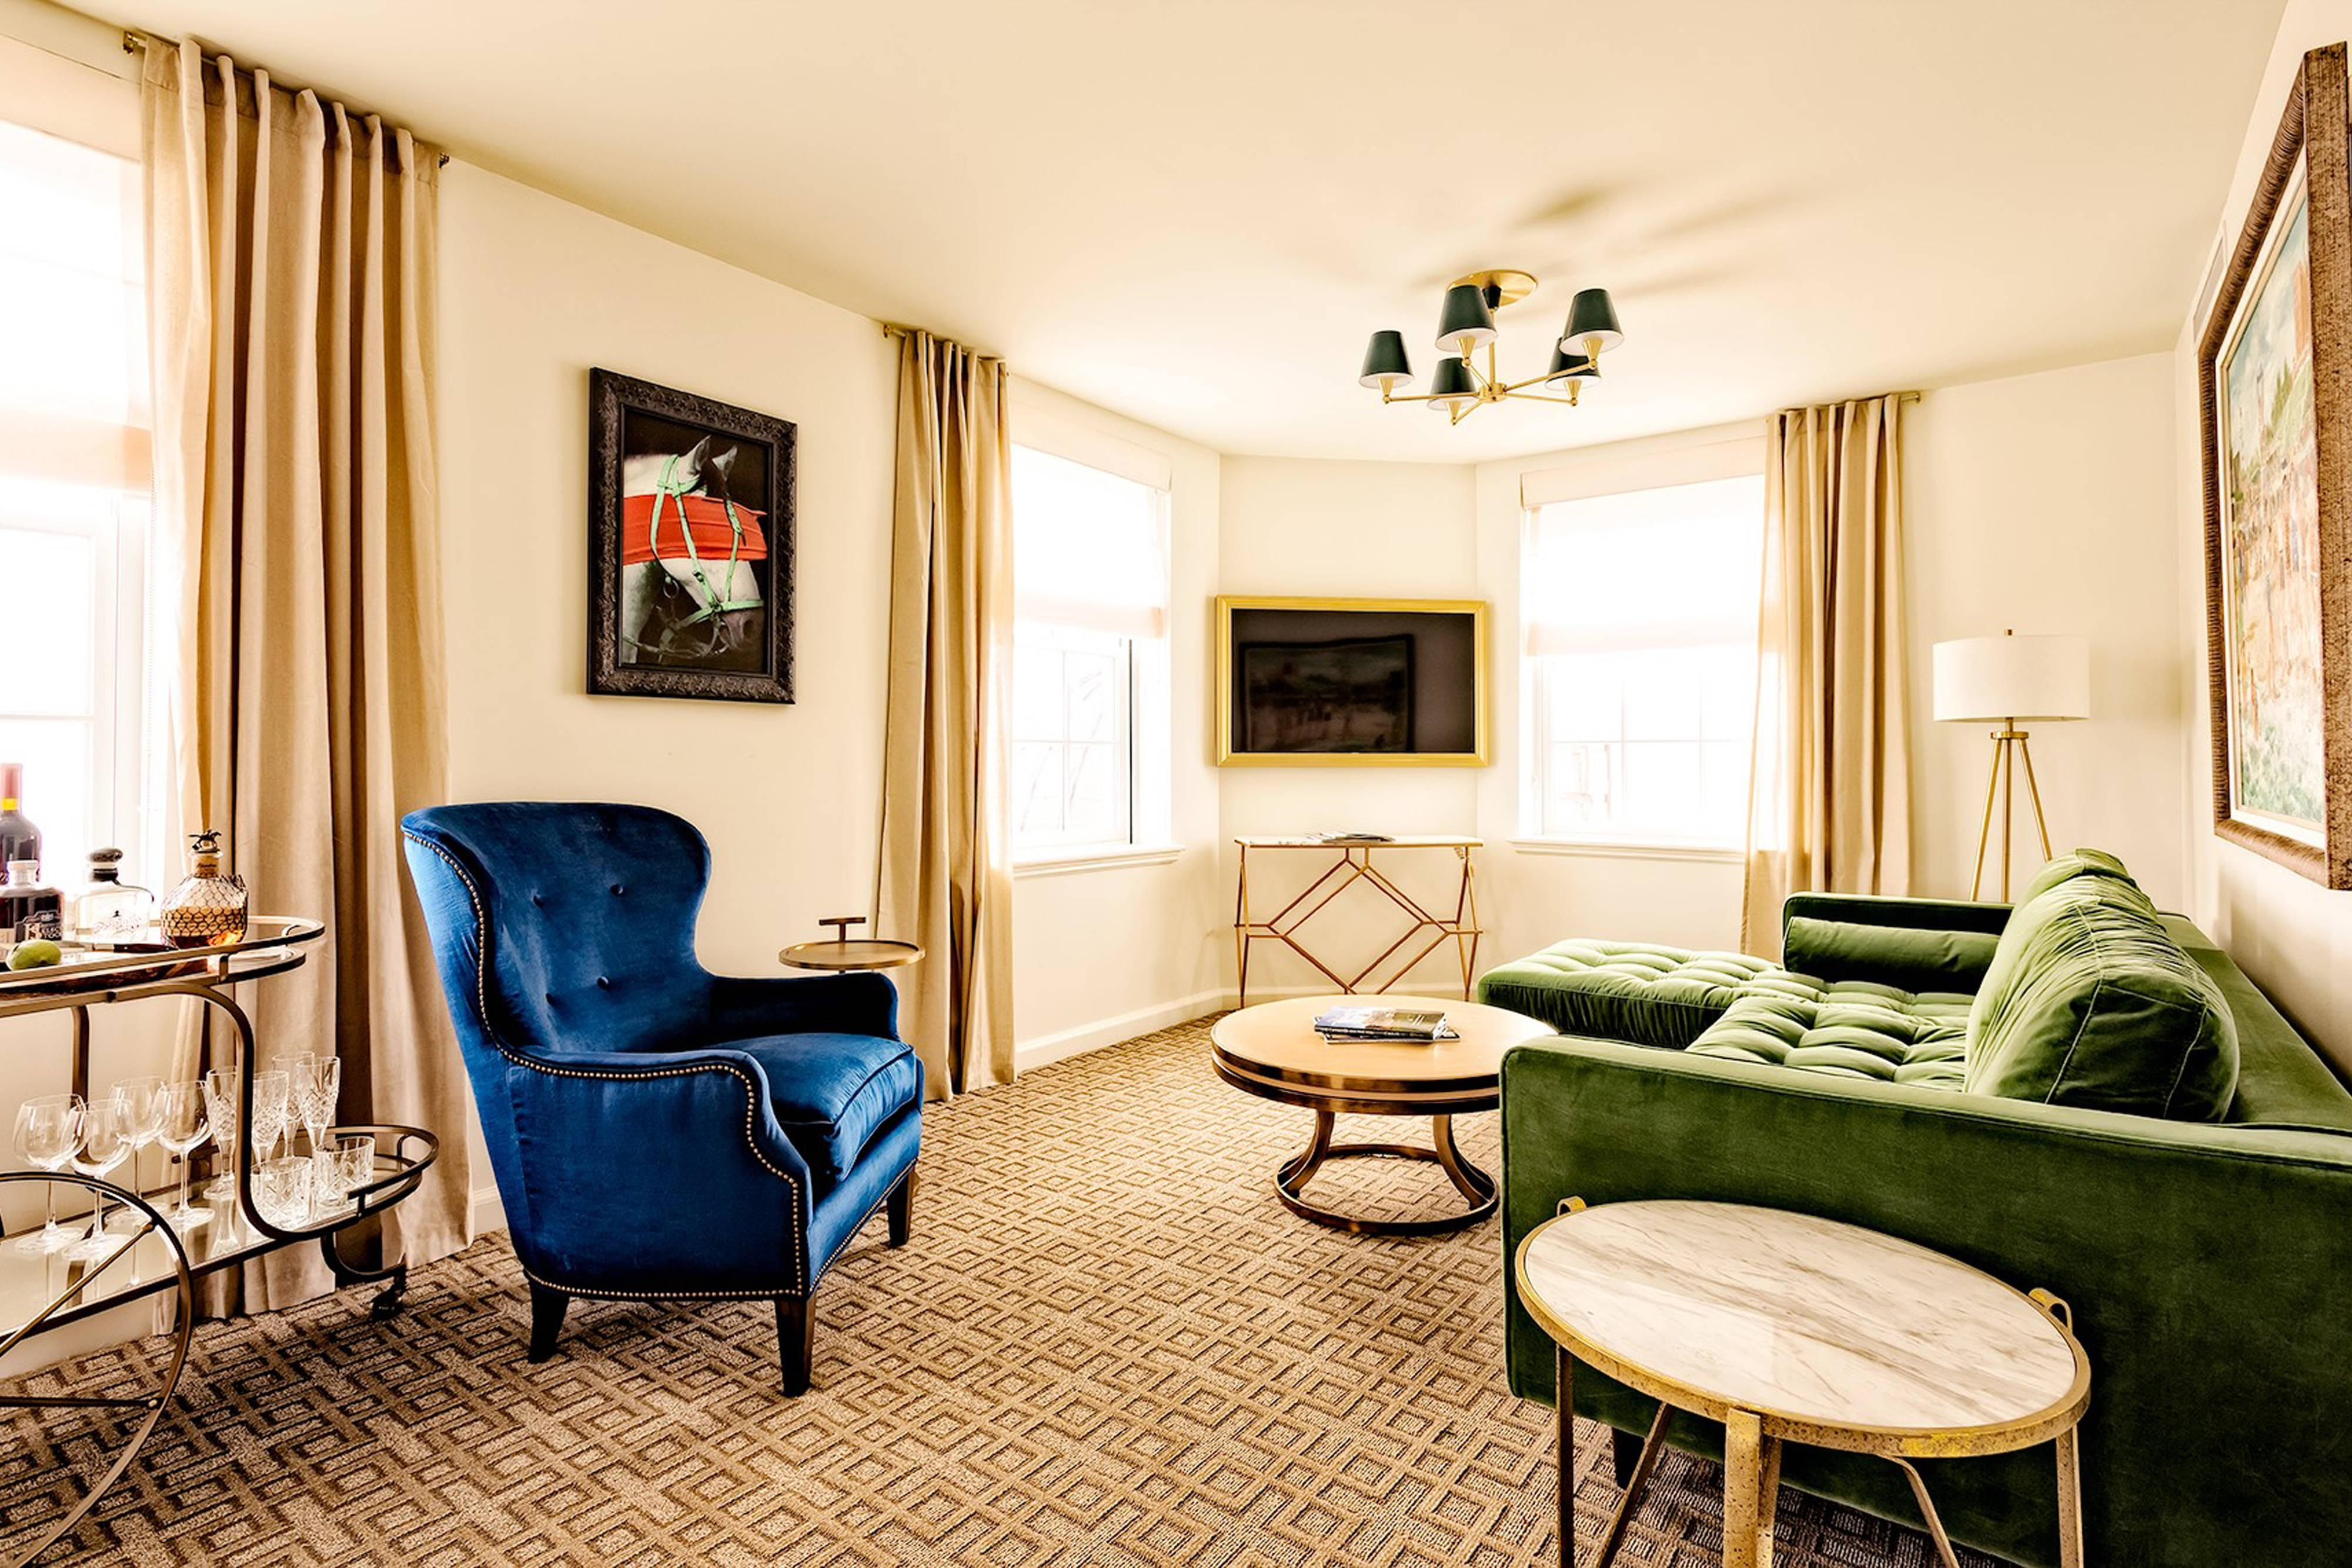 The cavalier virginia beach autograph collection hotel - 2 bedroom hotels in virginia beach ...